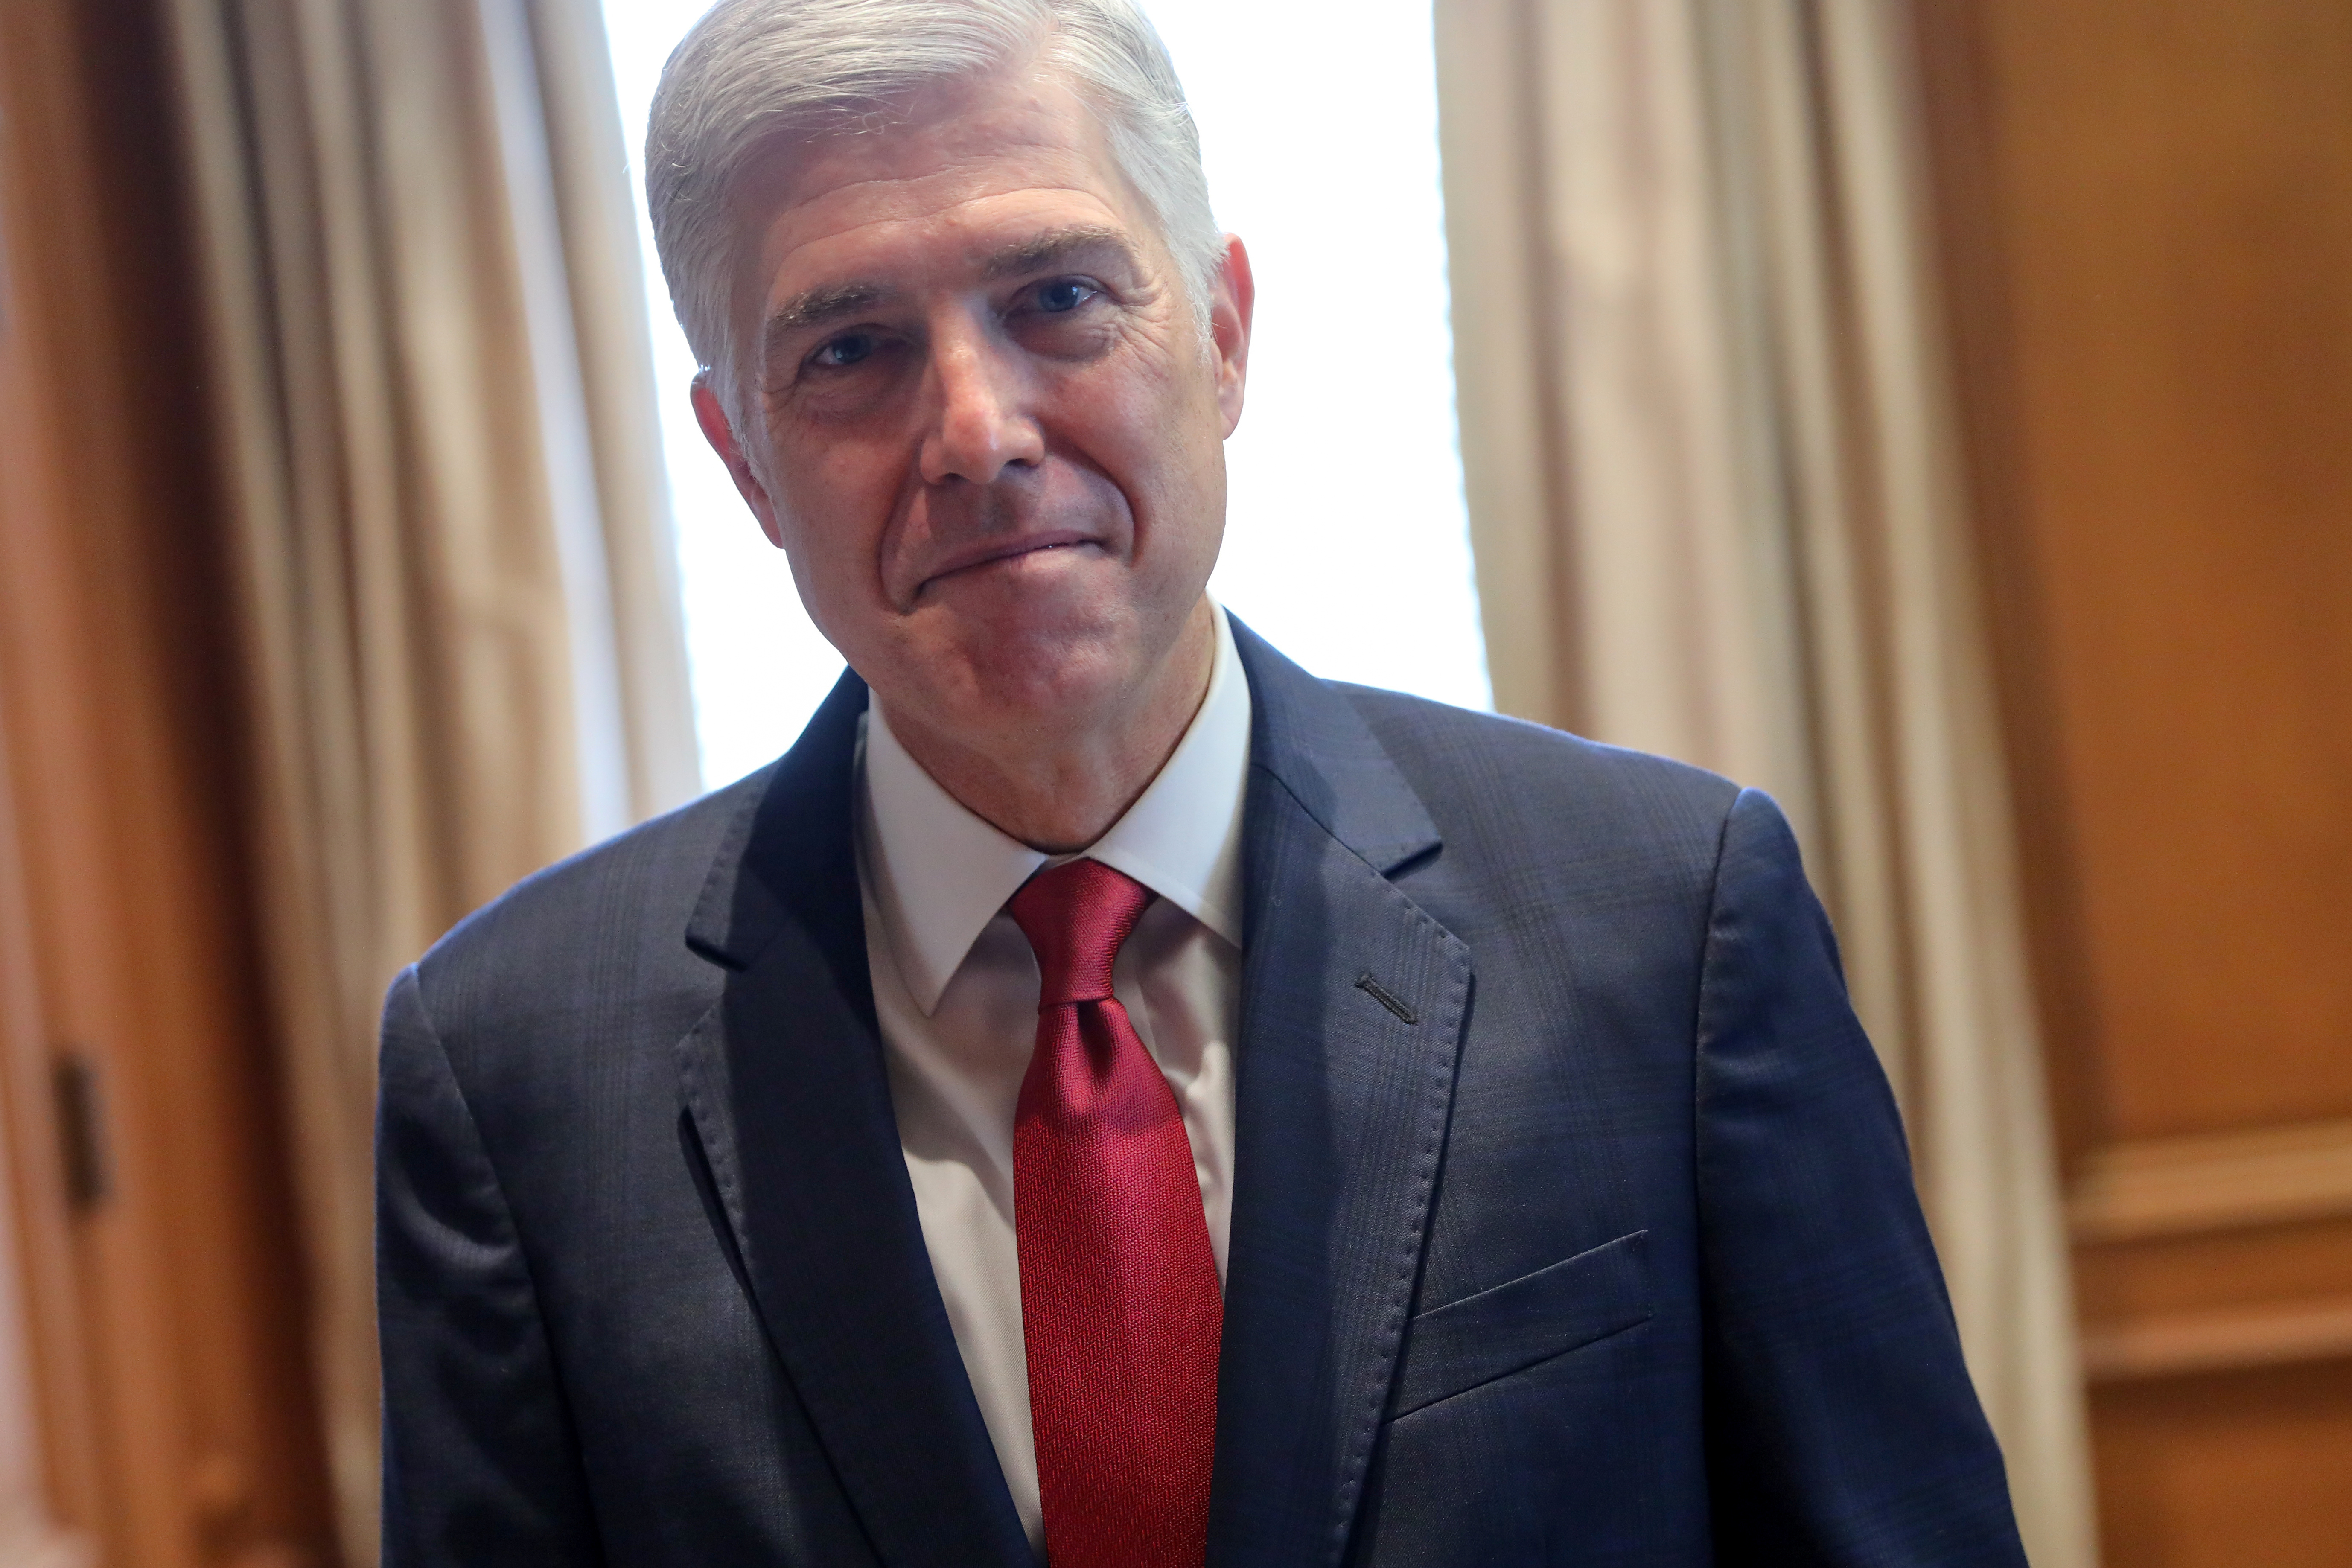 U.S. Justice Gorsuch sees value of immigration through wife's eyes